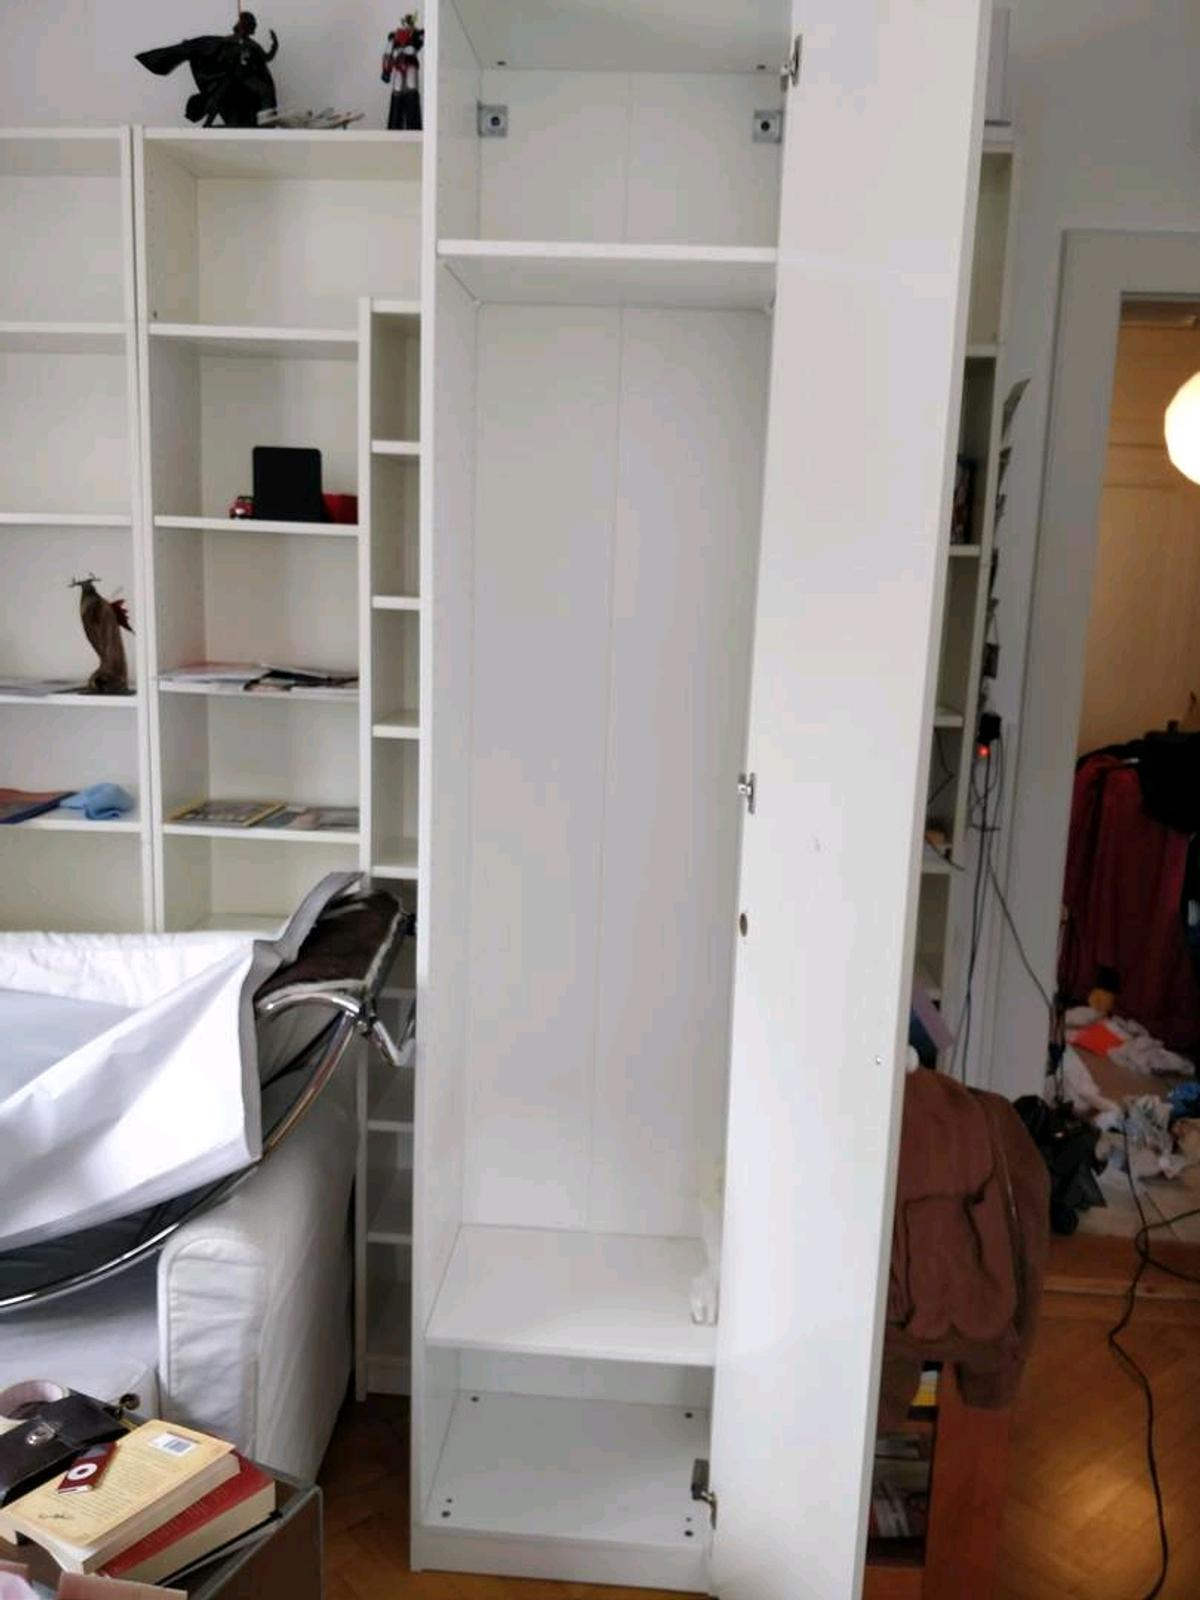 Armoire Pax Ikea Blanche In 1700 Fribourg Freiburg For Chf 30 00 For Sale Shpock